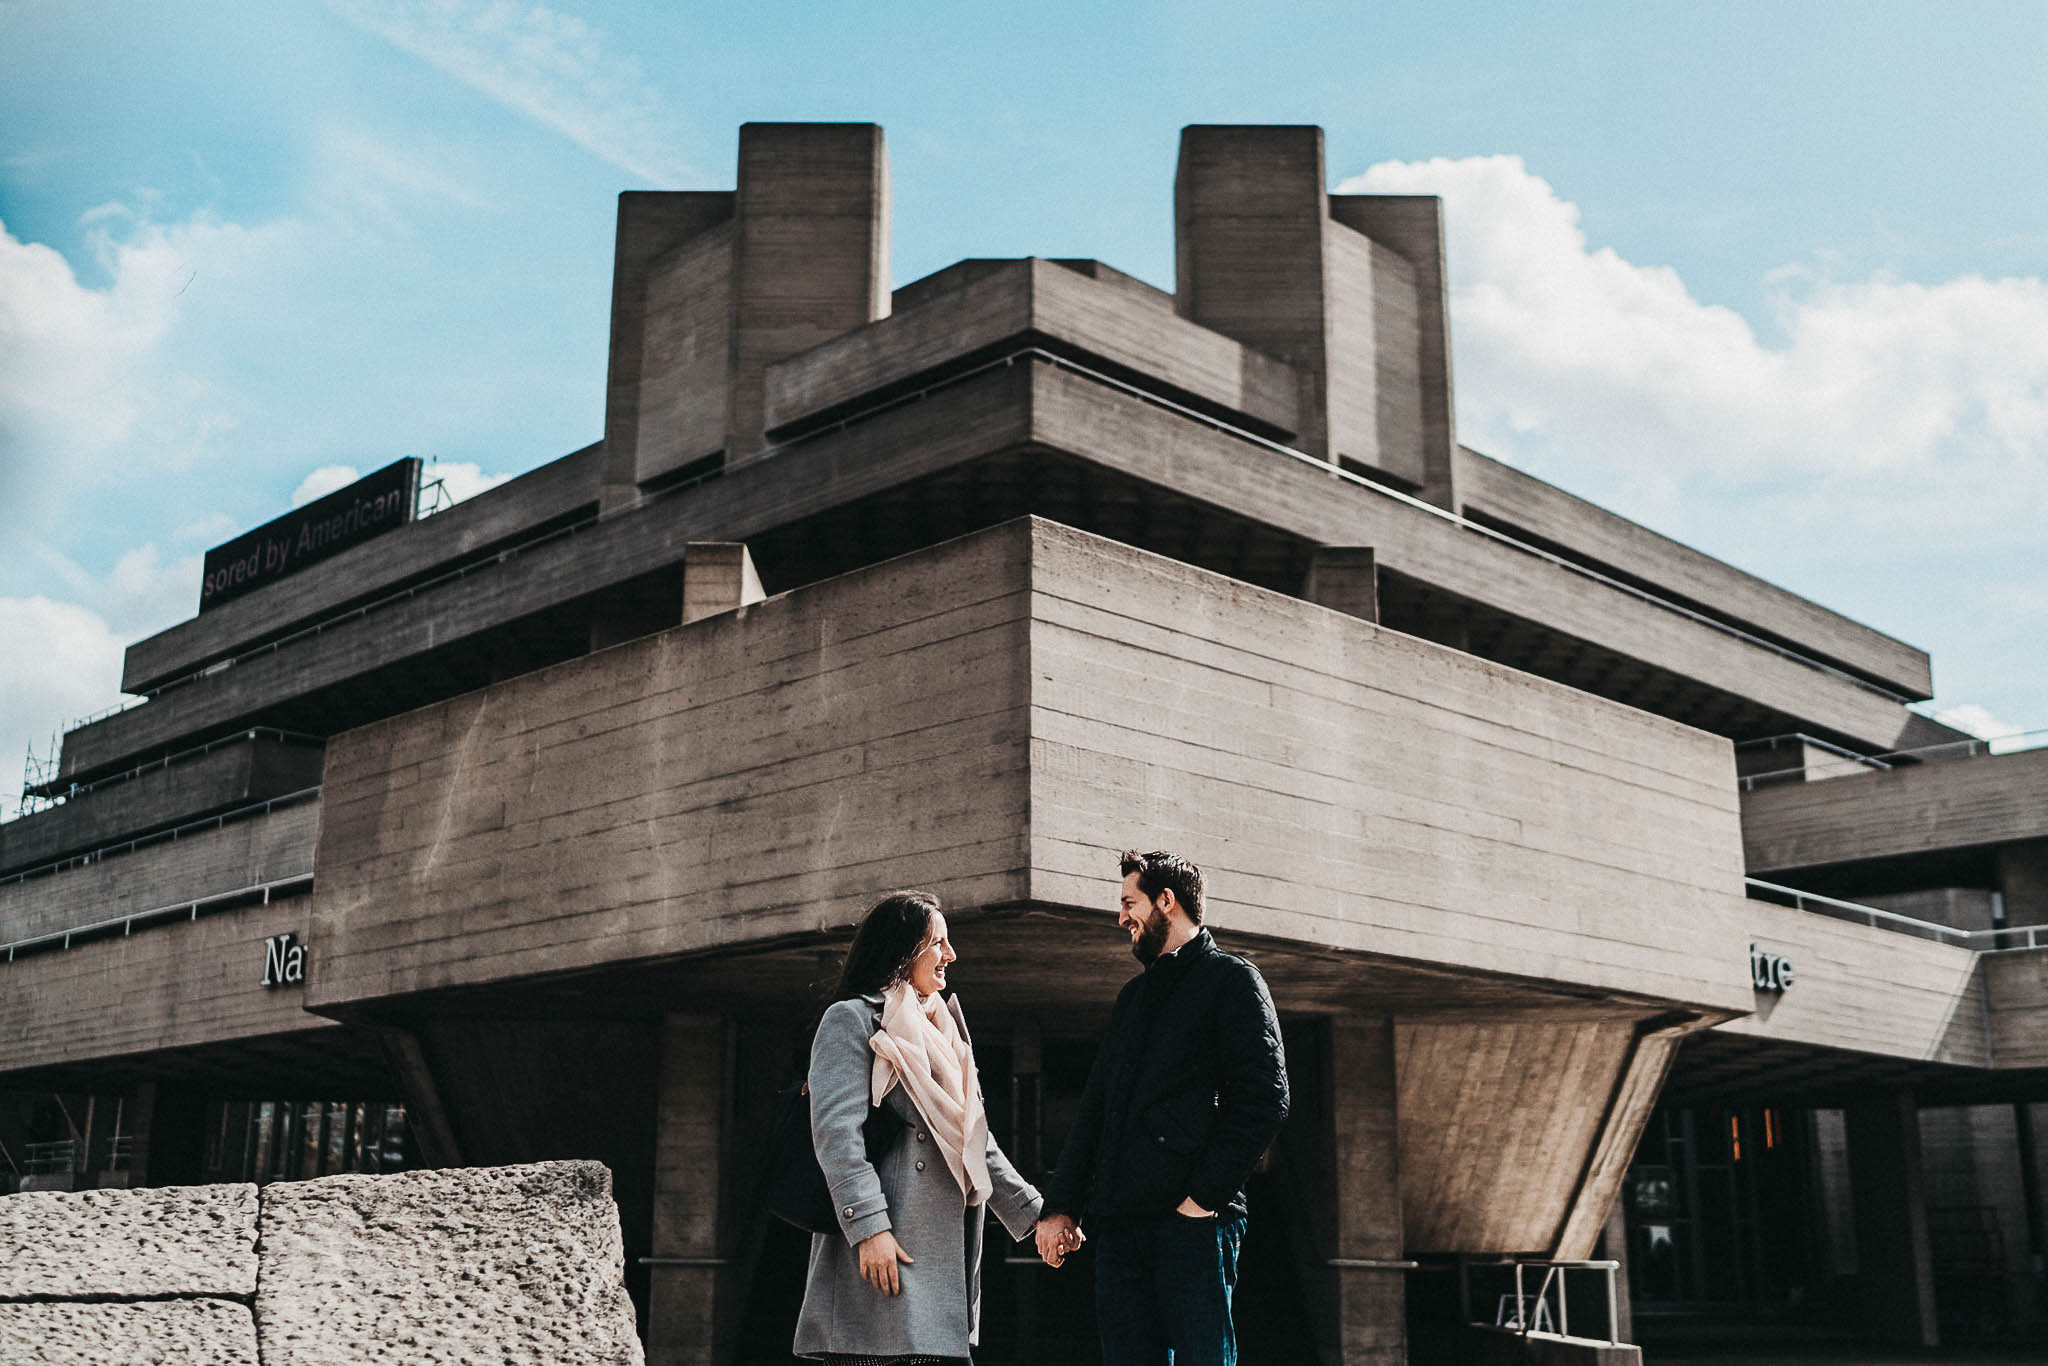 southbank picture of a couple holding hands